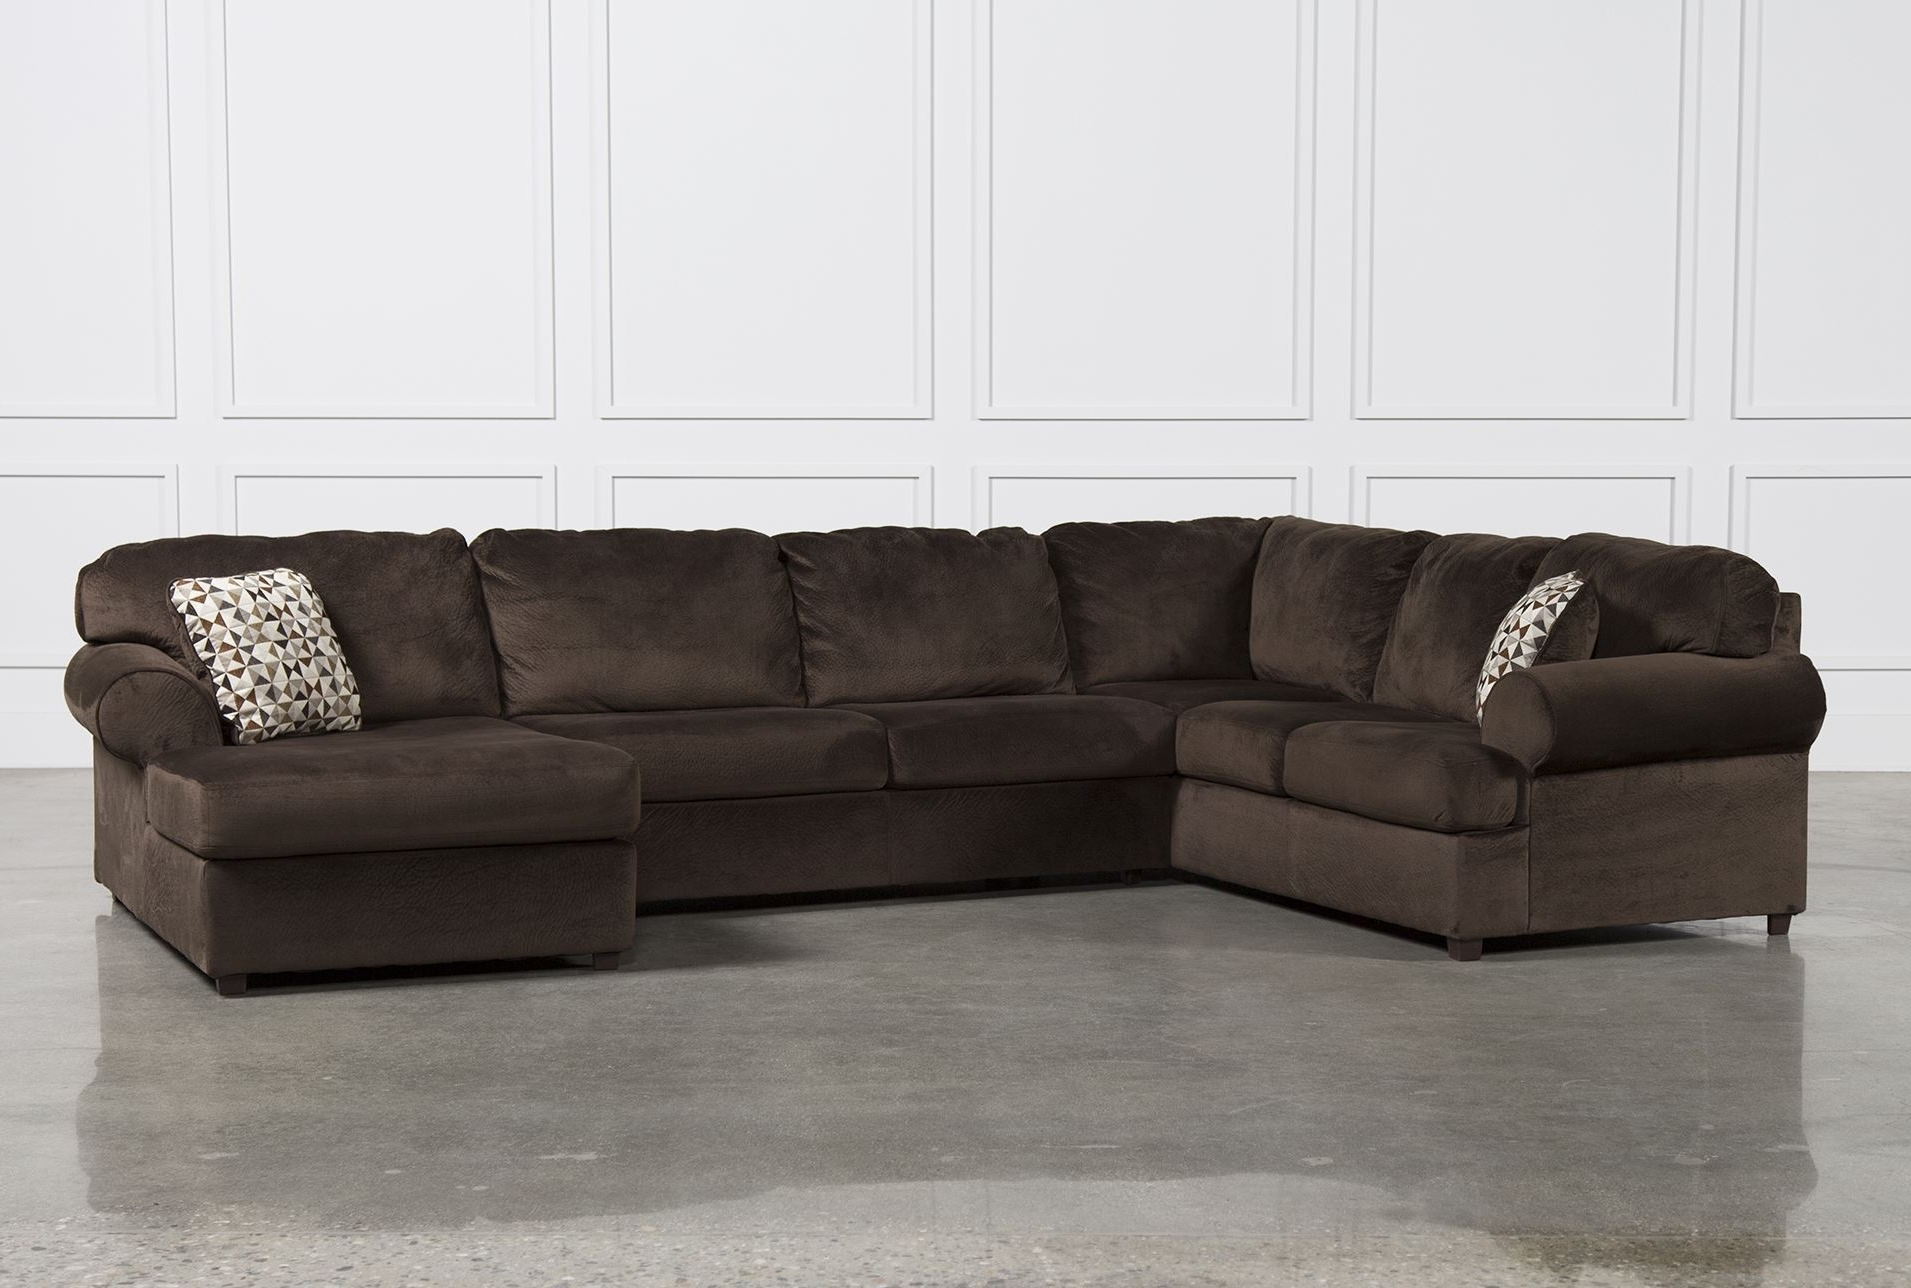 Plush Sectional Sofas – Tourdecarroll For Latest 3 Piece Sectional Sleeper Sofas (View 12 of 15)